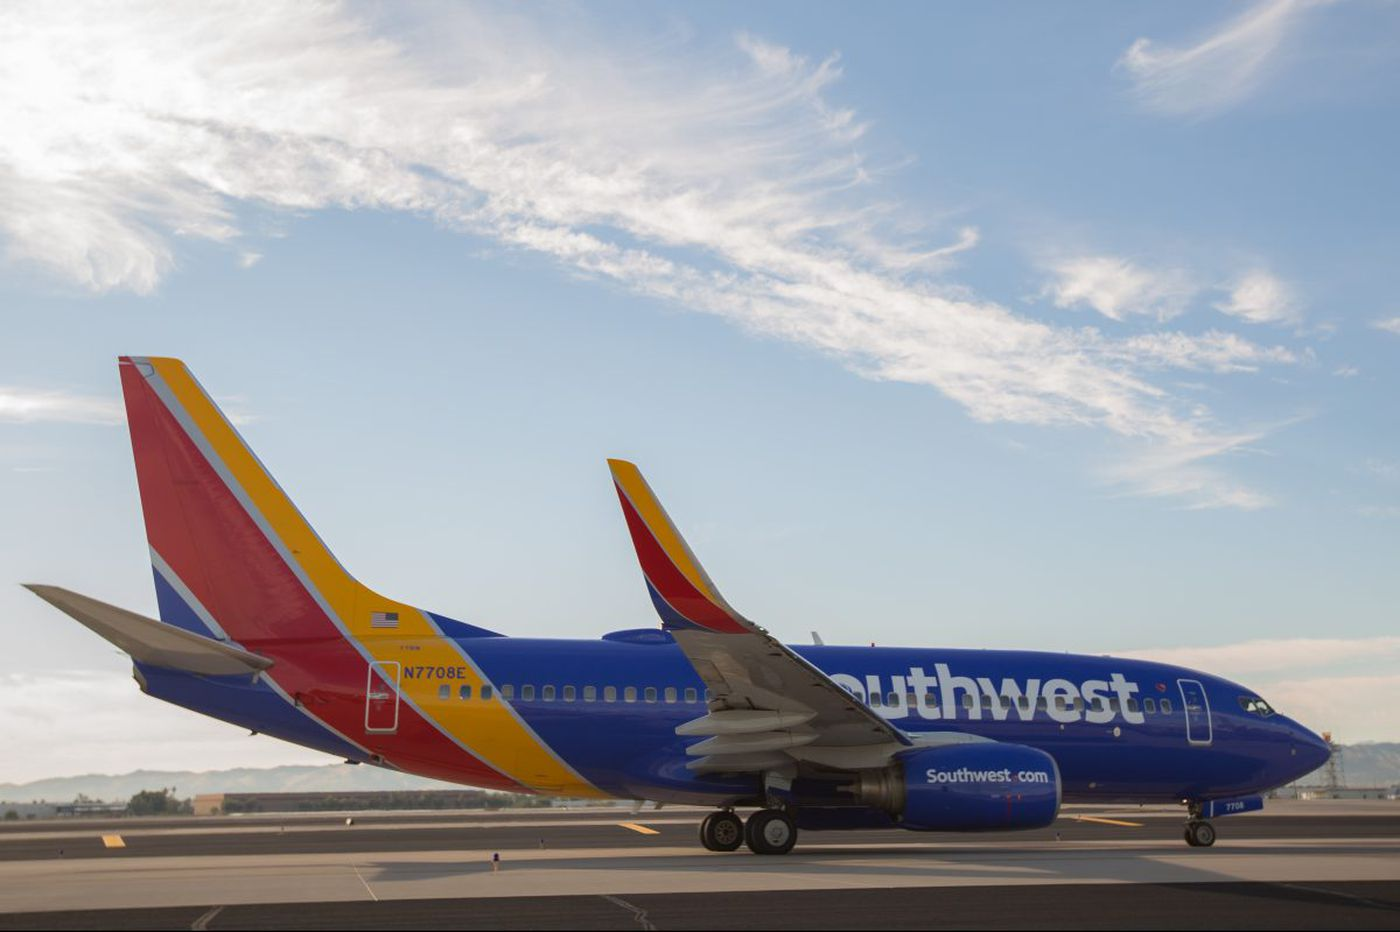 Southwest Airlines launches 3-day fare sale, with some domestic flights under $100 round trip